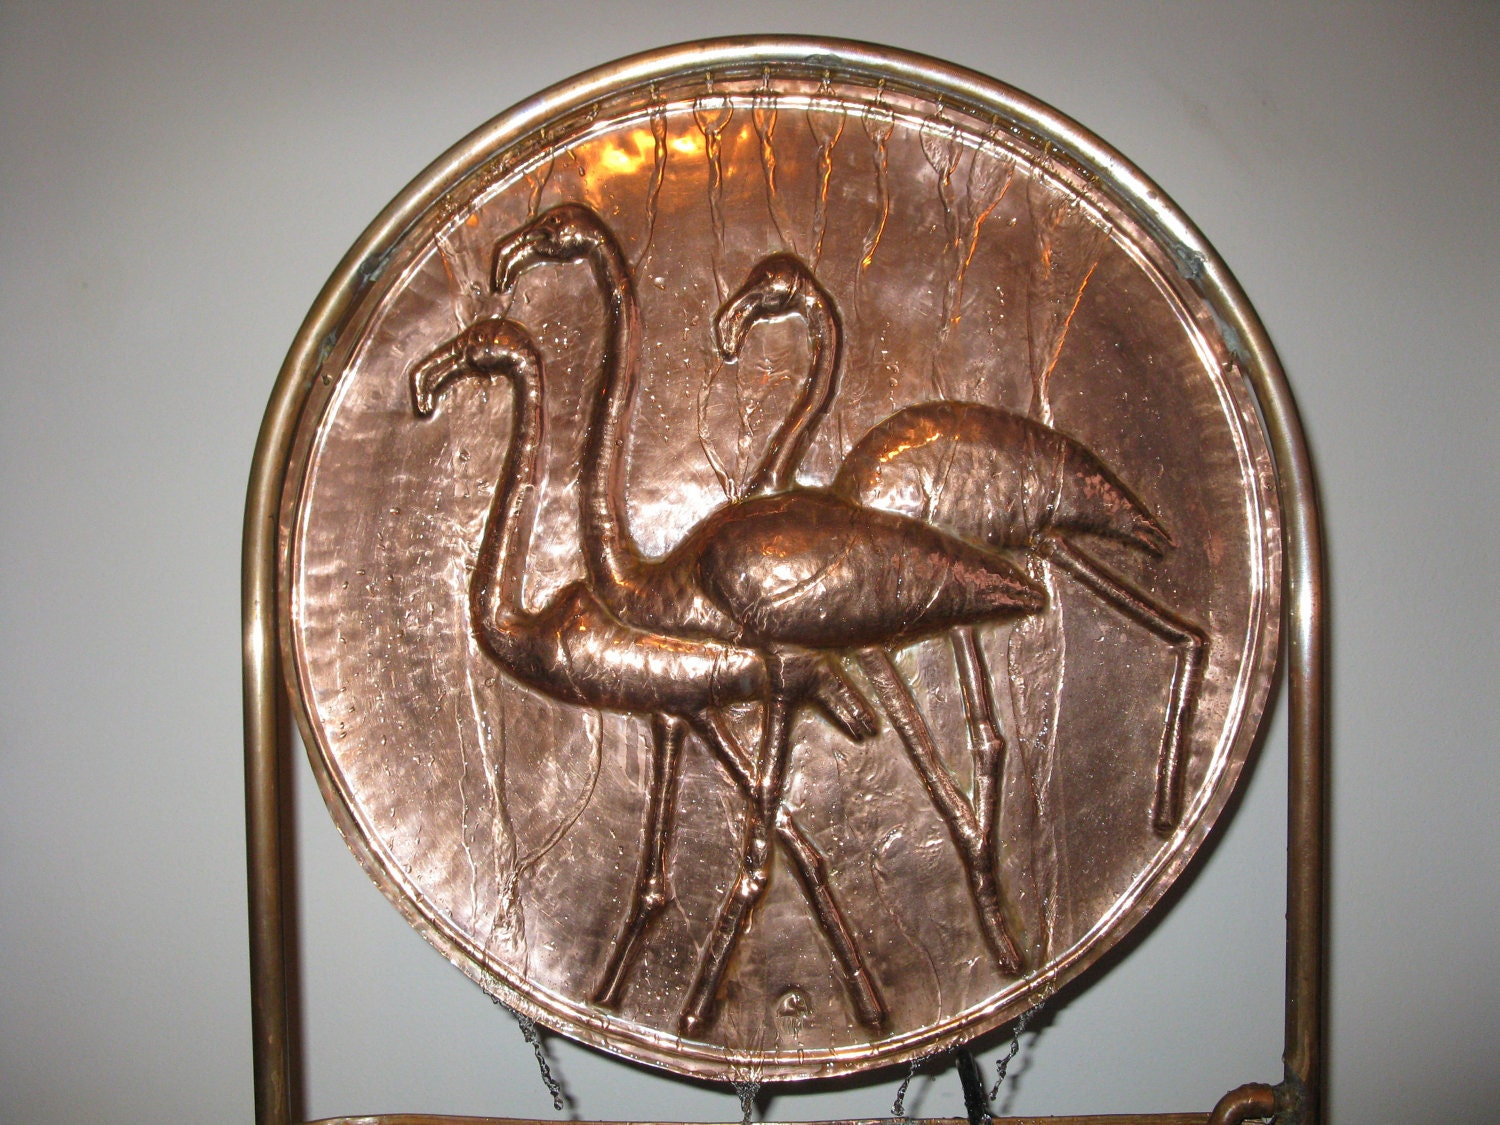 Copper fountain-repousse flamingo fountain